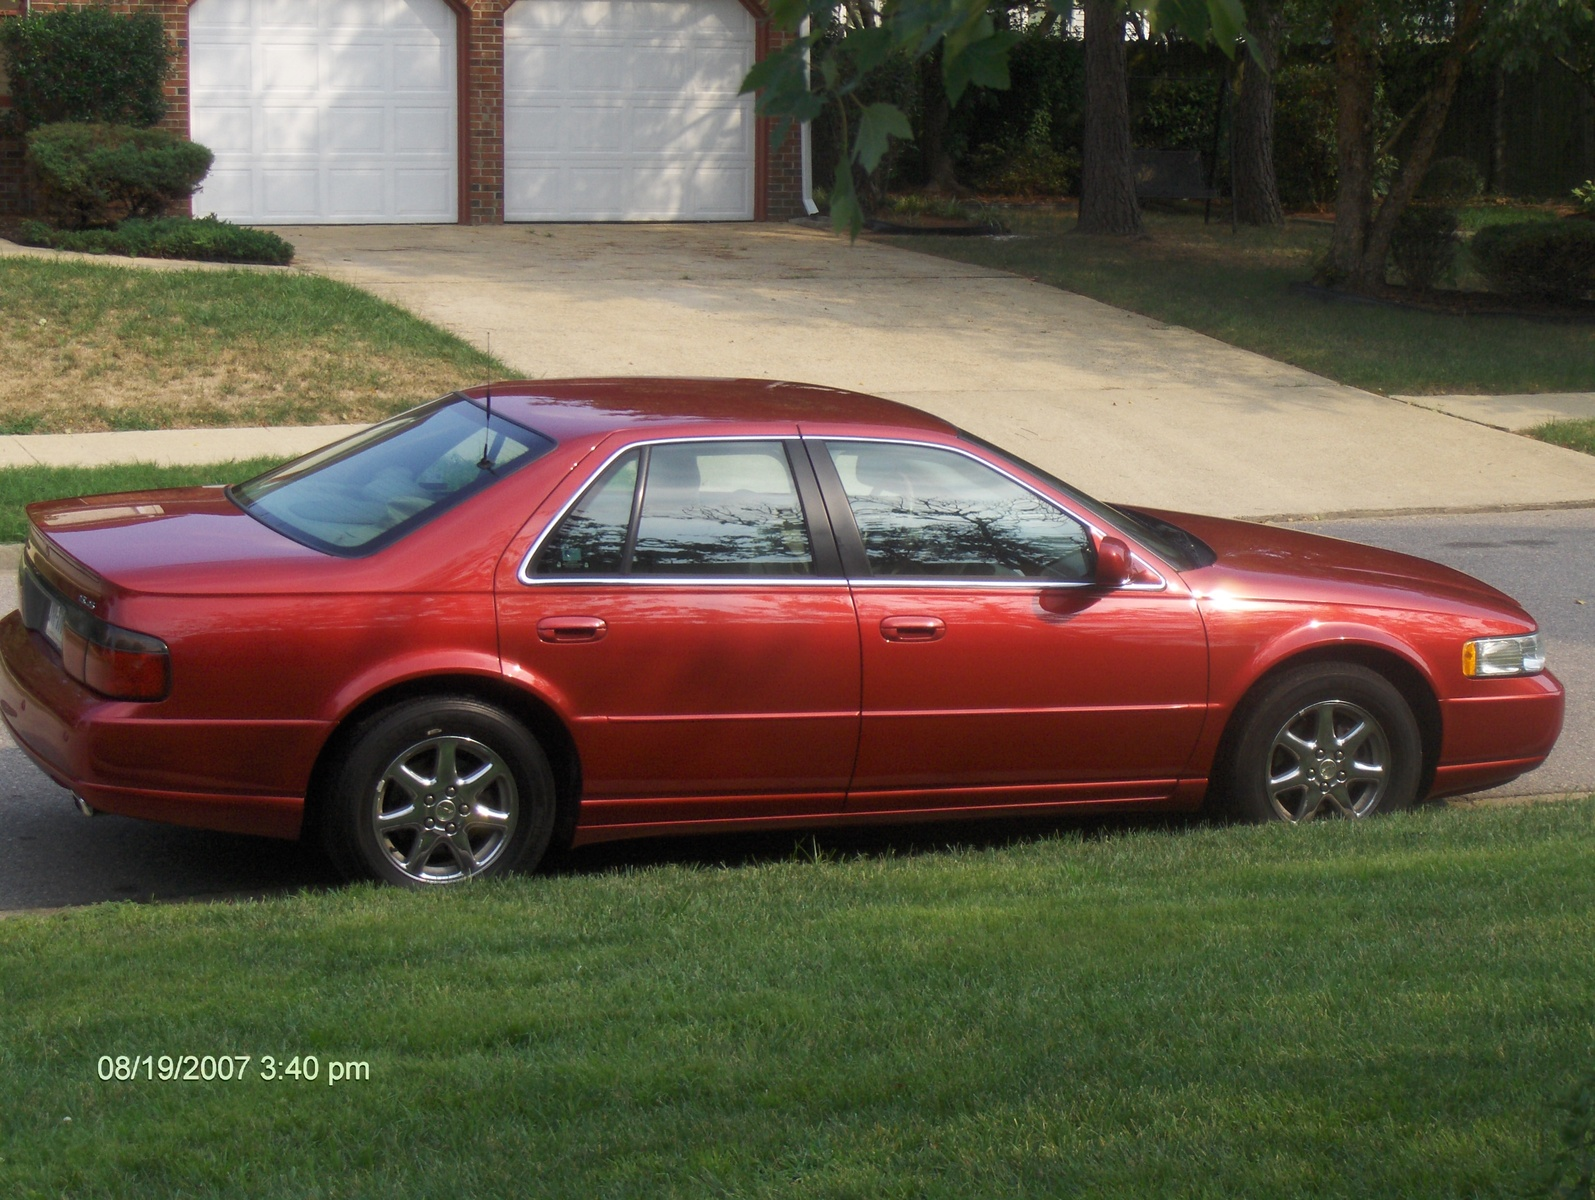 2002 Cadillac Seville - Pictures - 2002 Cadillac Seville STS pict ...